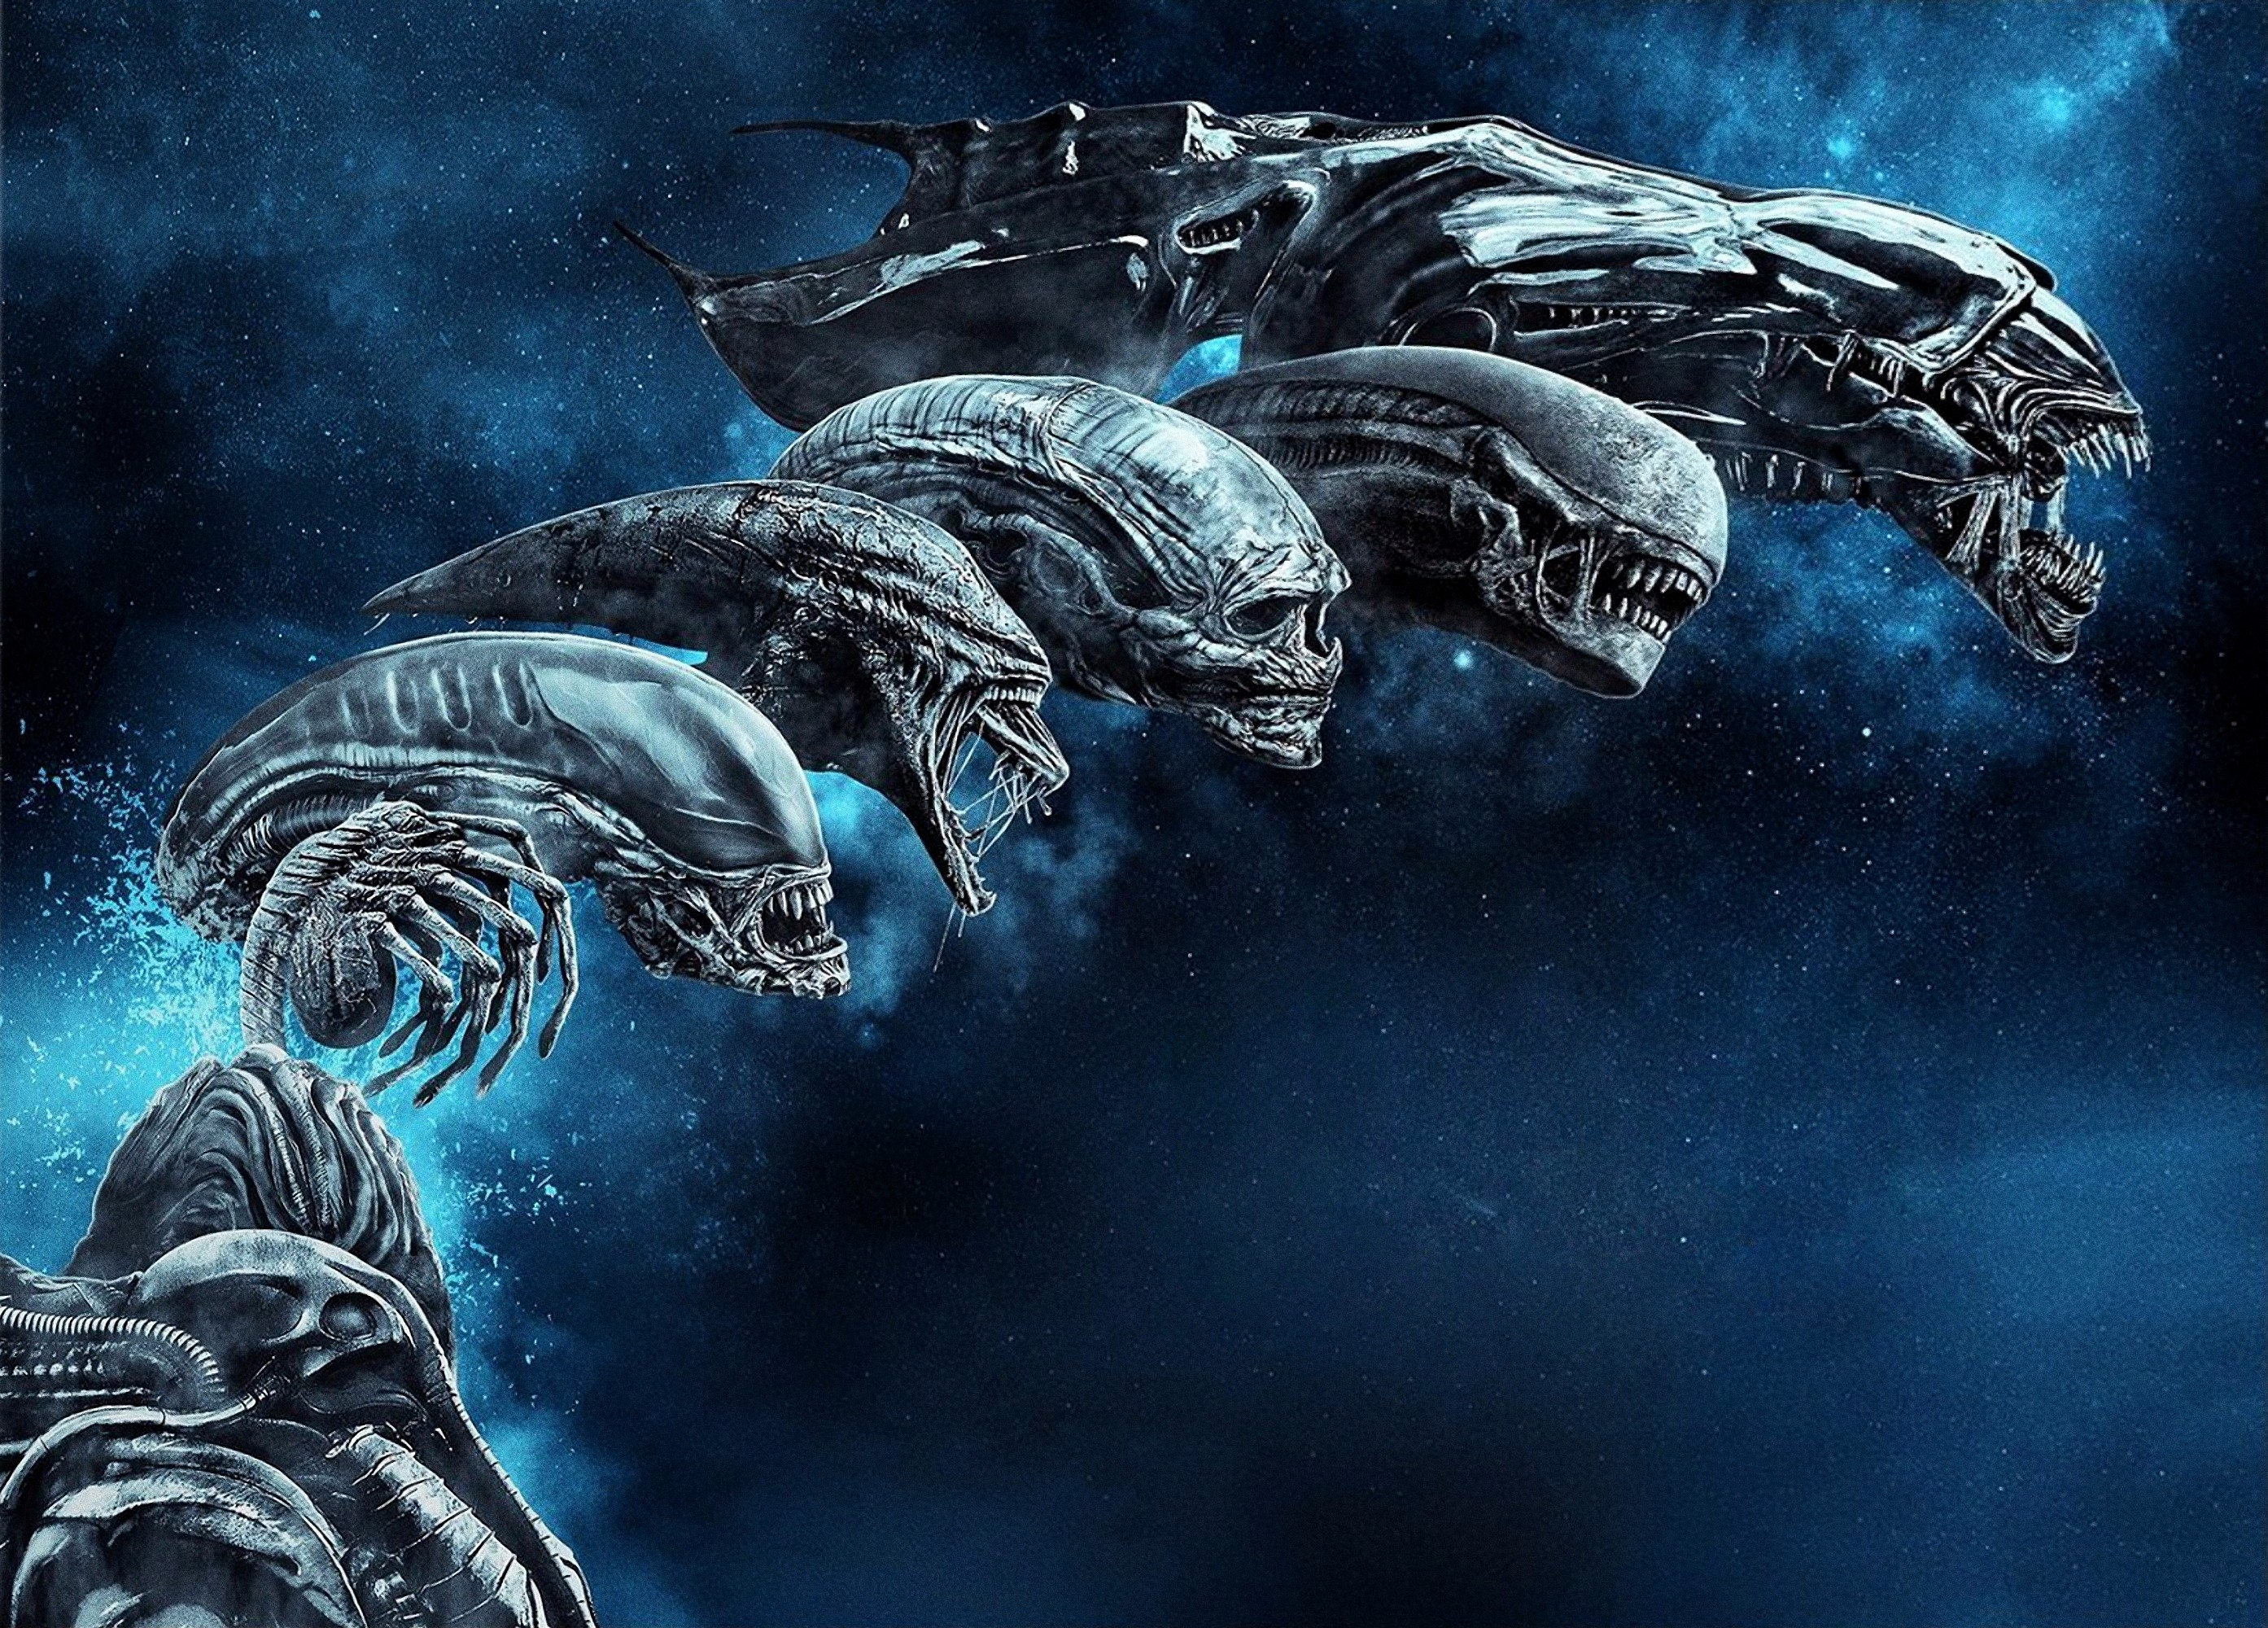 Res: 2787x2000, HD Wallpaper   Background Image ID:886516.  Movie Alien